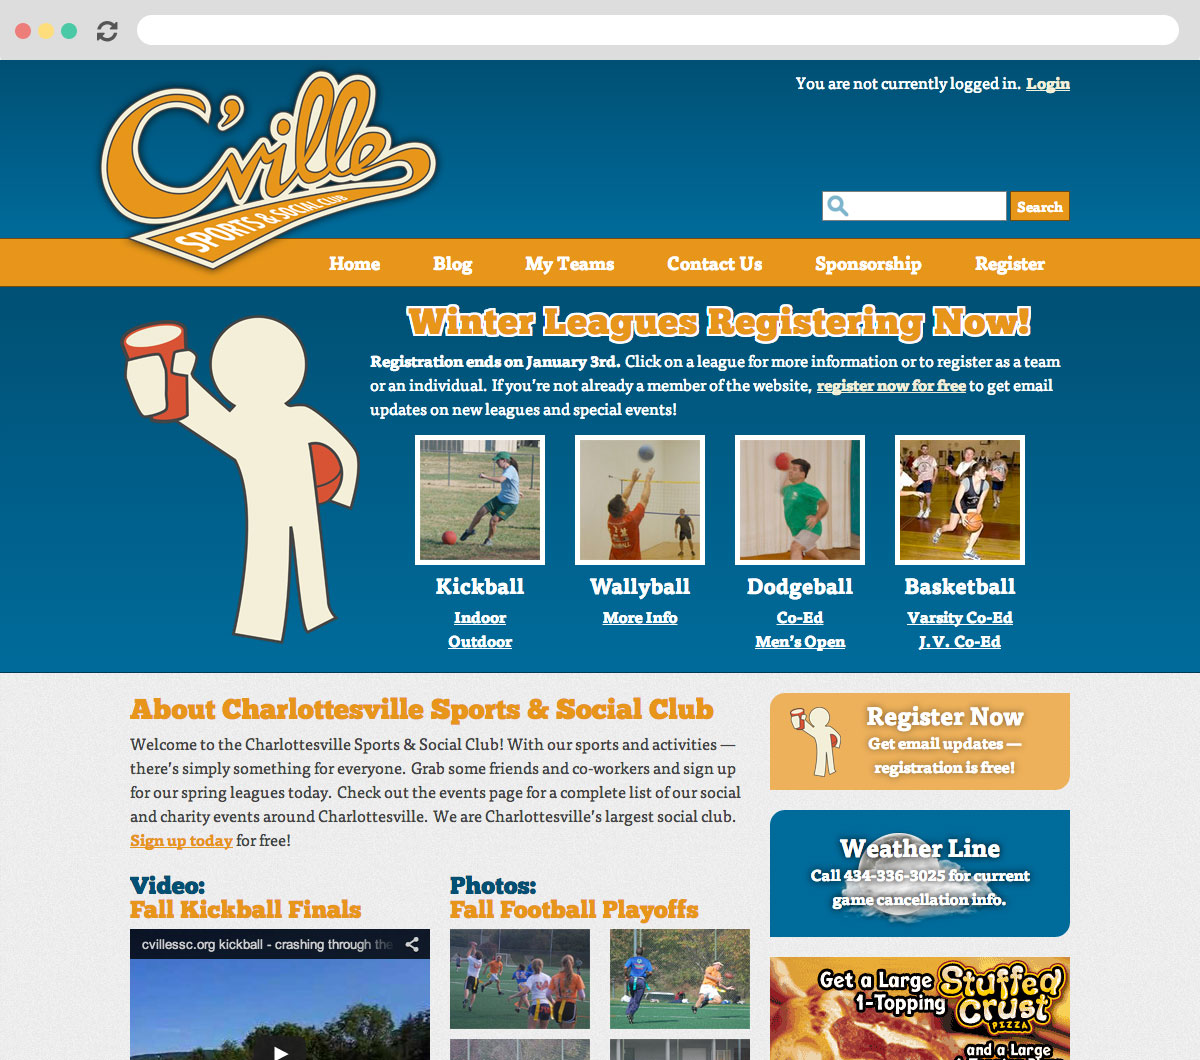 Charlottesville Sports & Social Club Homepage